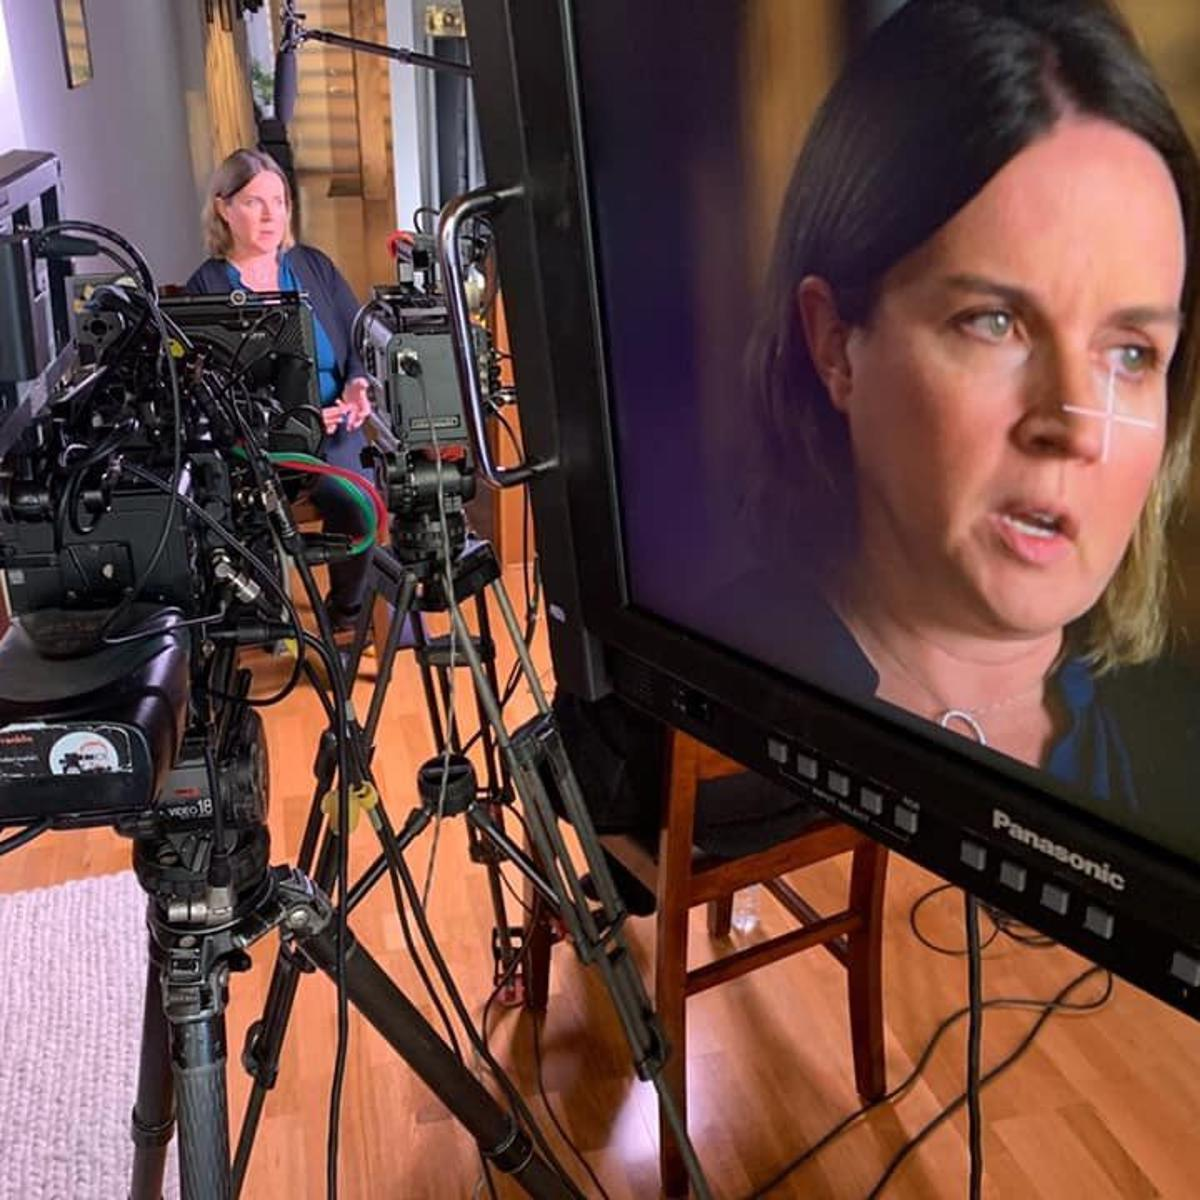 St Charles Murder Is Focus Of New Forensic Files Television Stltoday Com